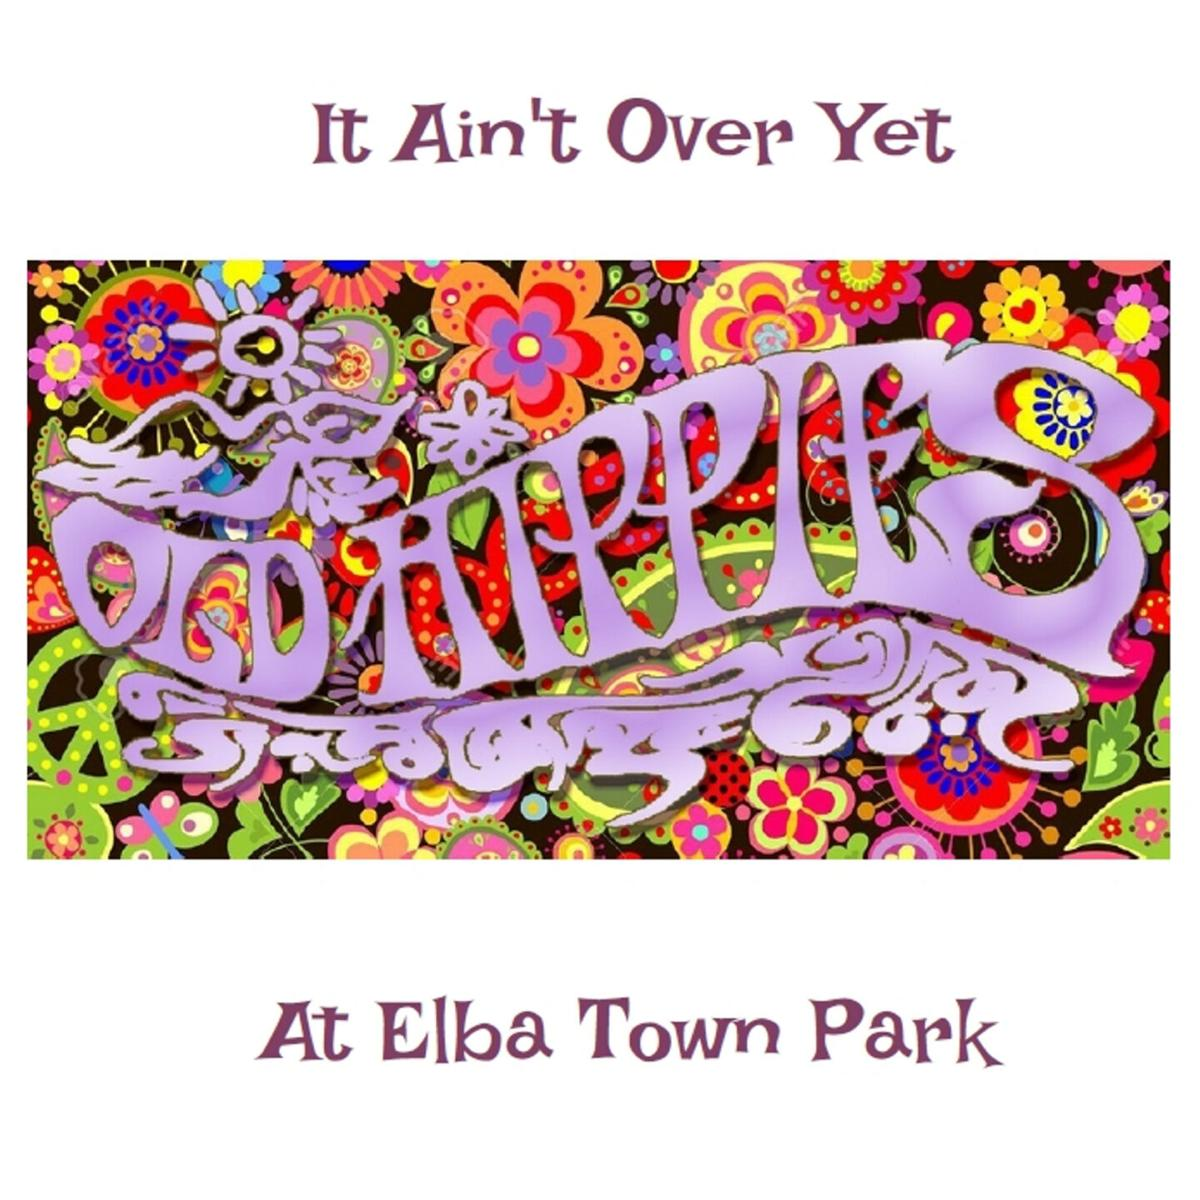 Old Hippies duo releases new CD